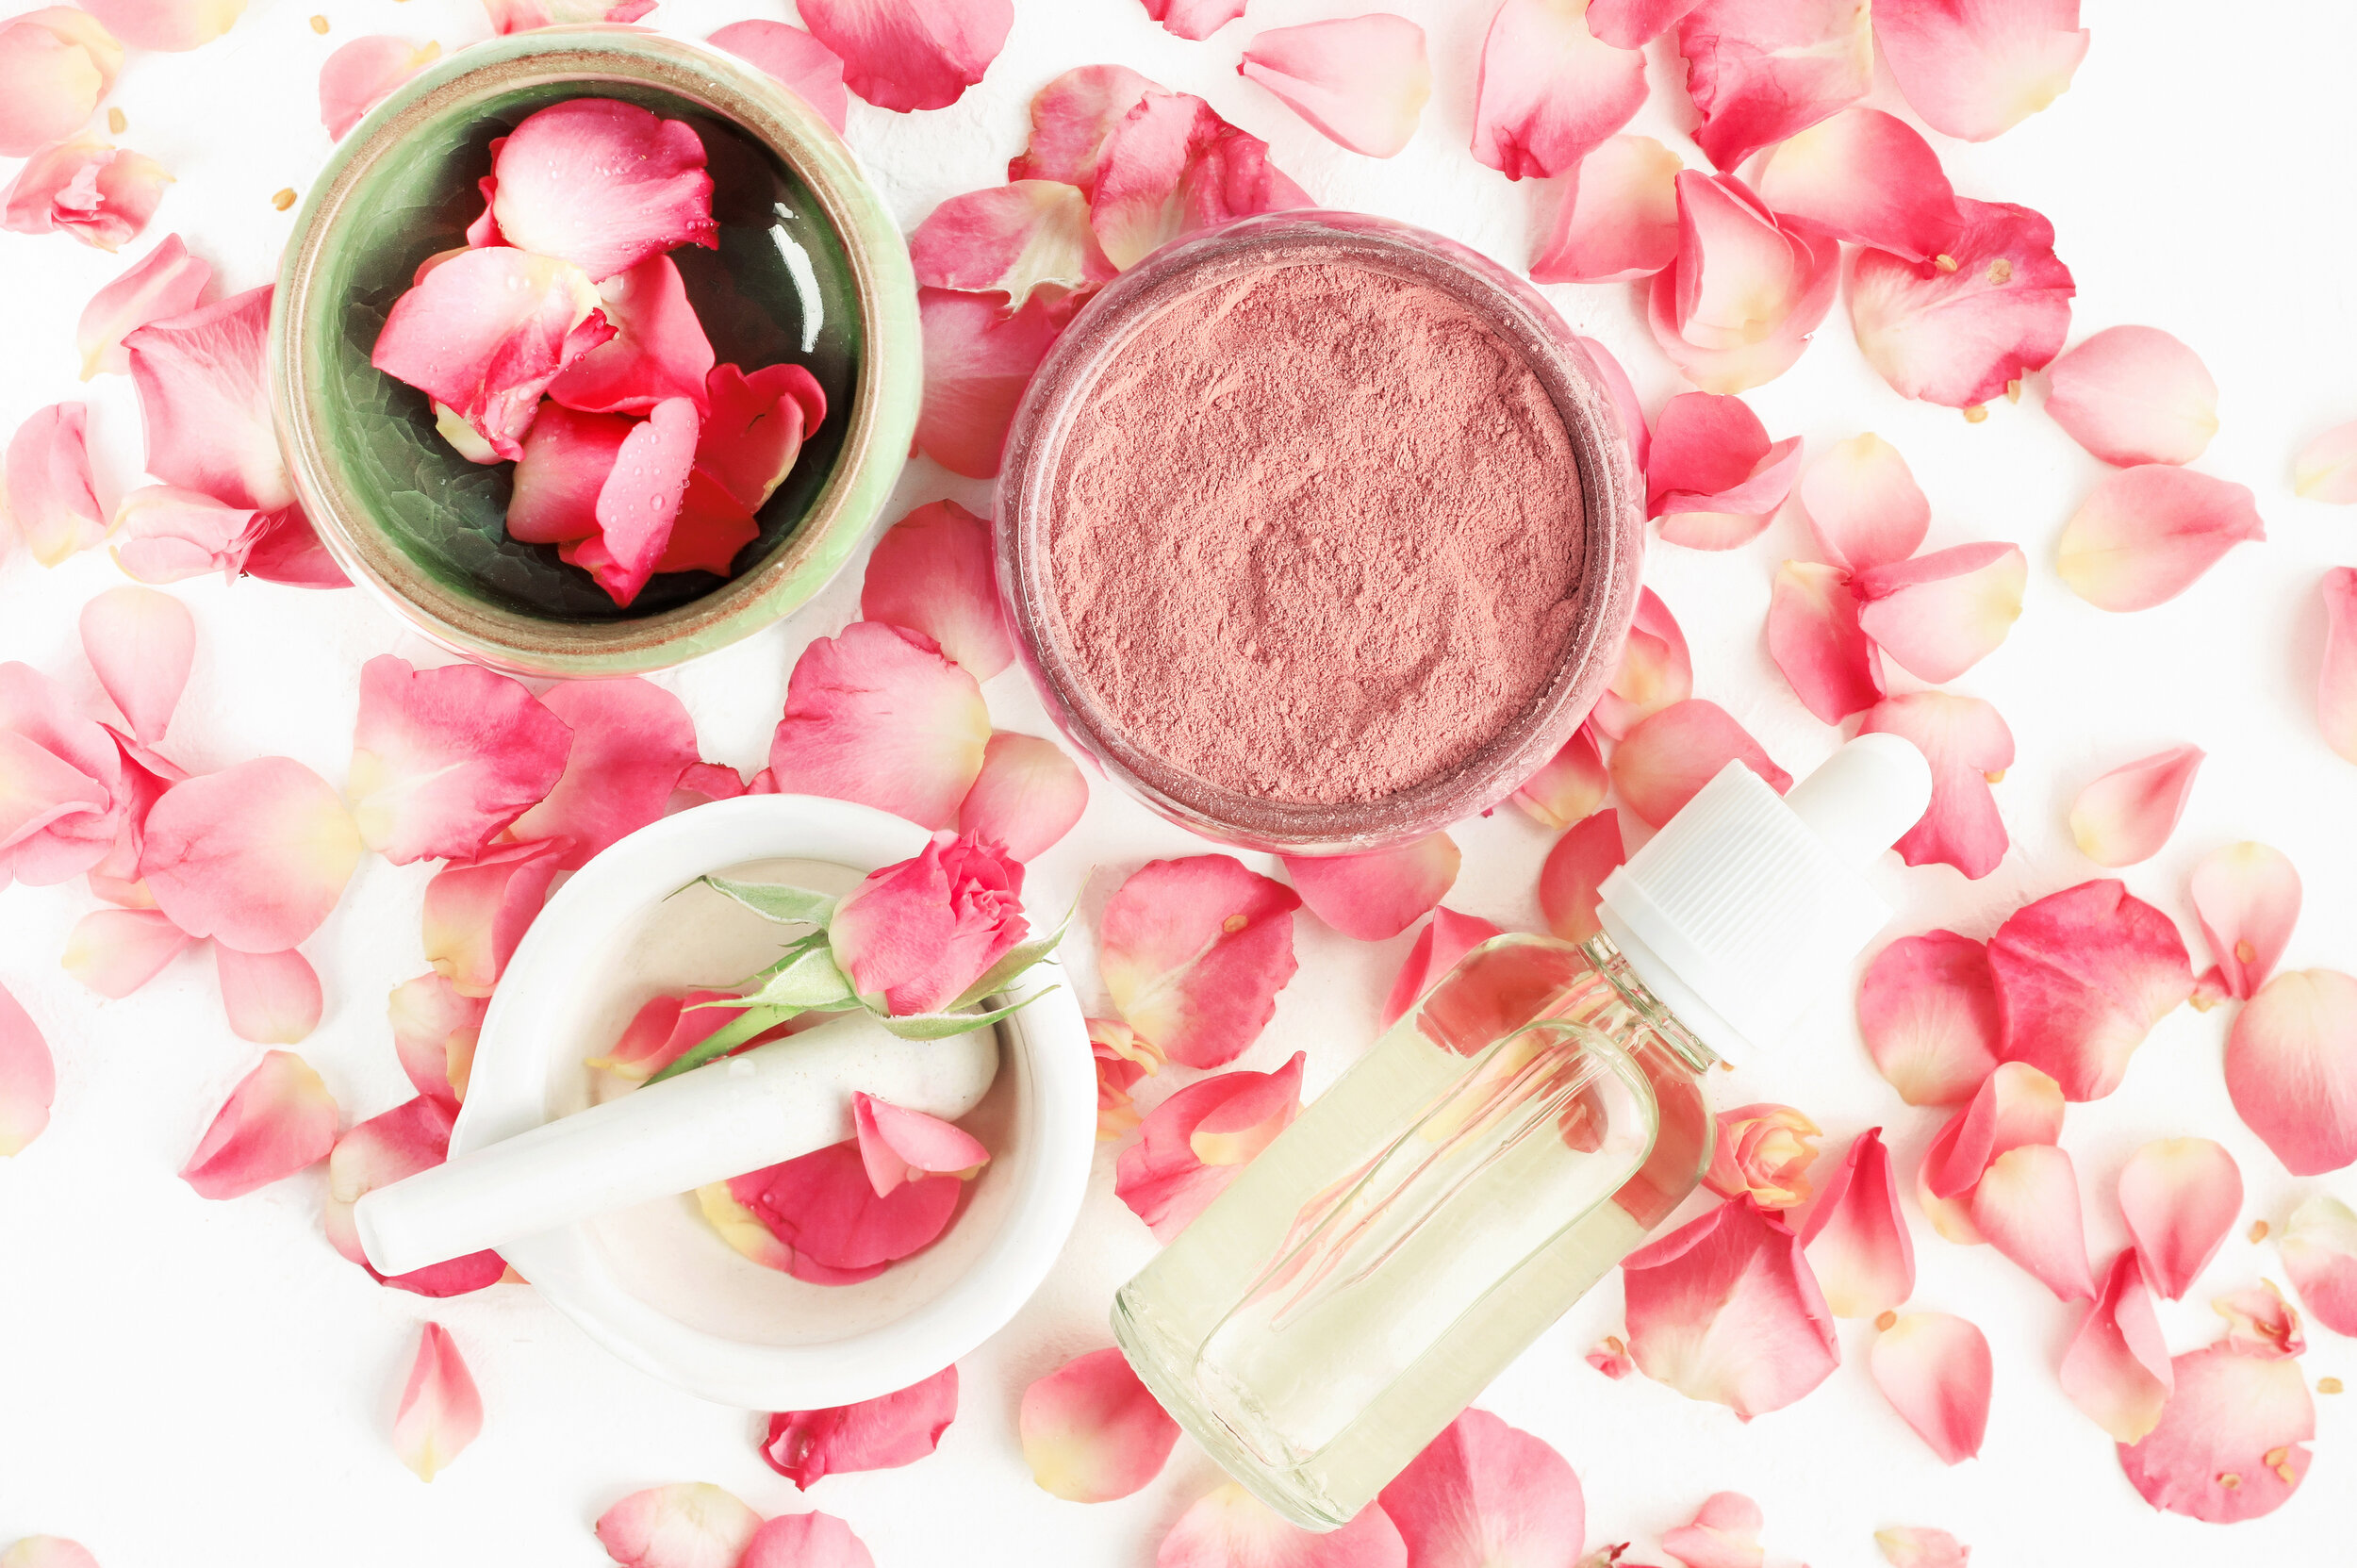 Top view botanical skincare home spa treatment with pink petals, rose blossom, clay face mask, bottle of essential oil.